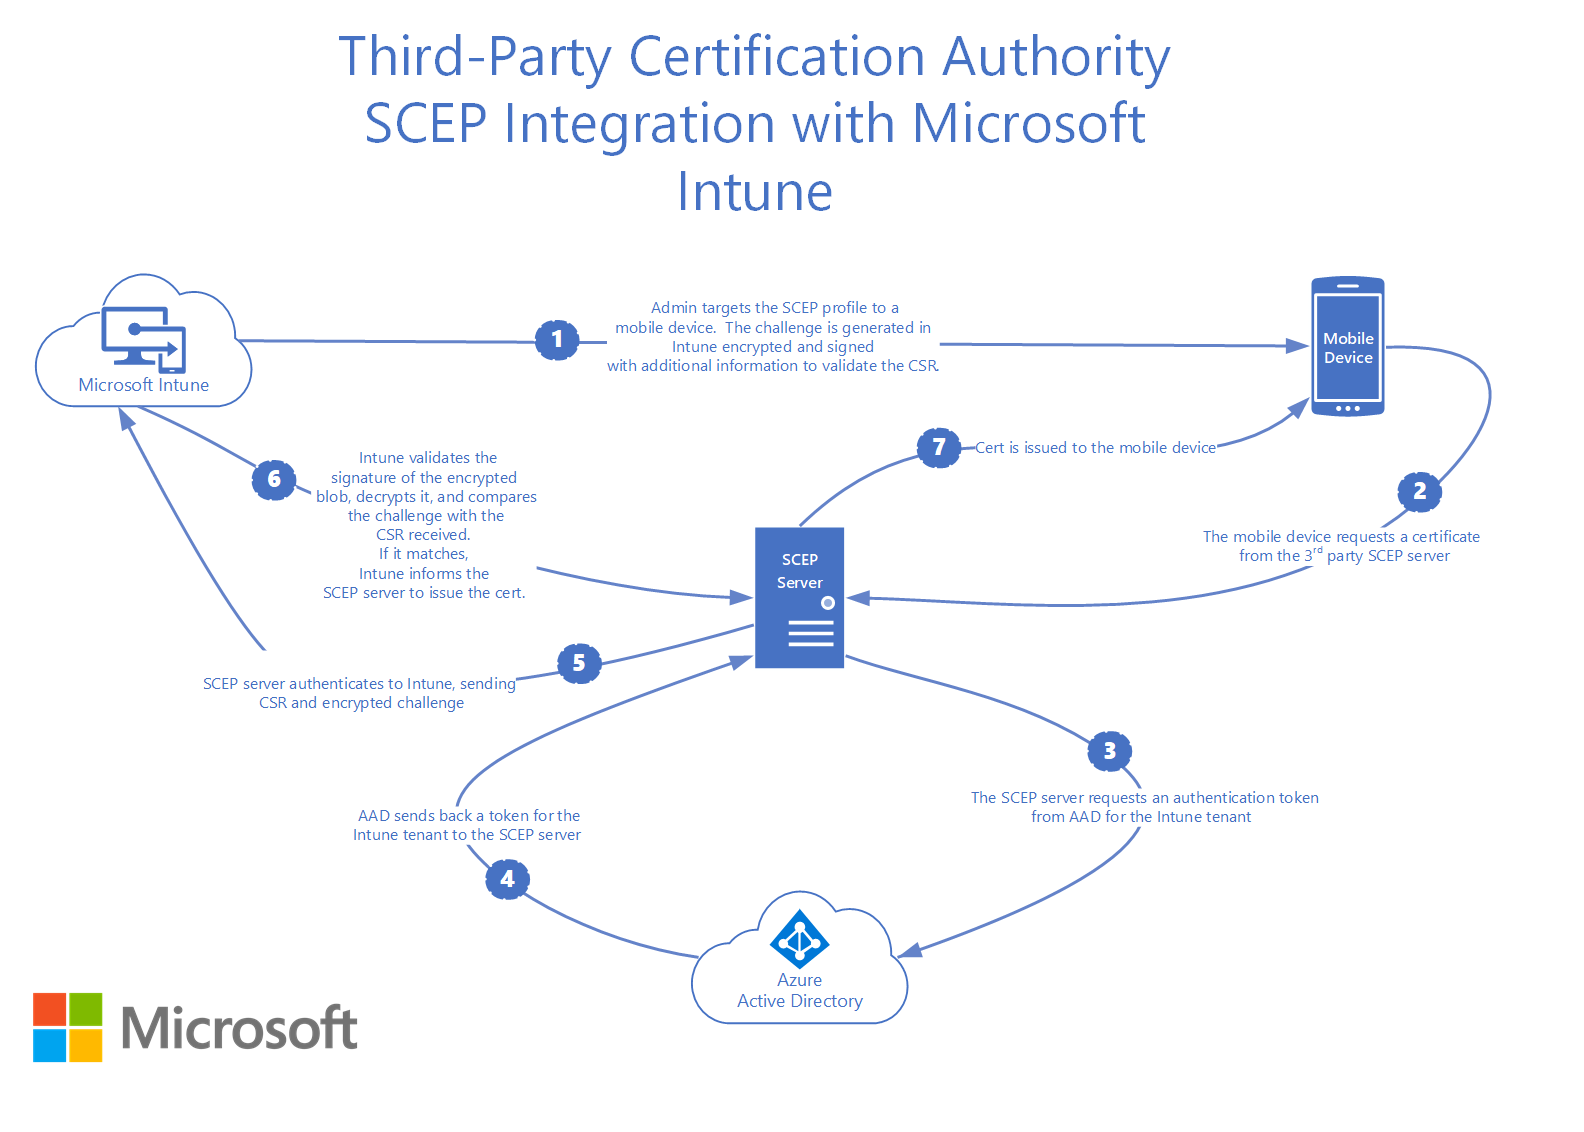 APIs to onboard 3rd party certificate authorities